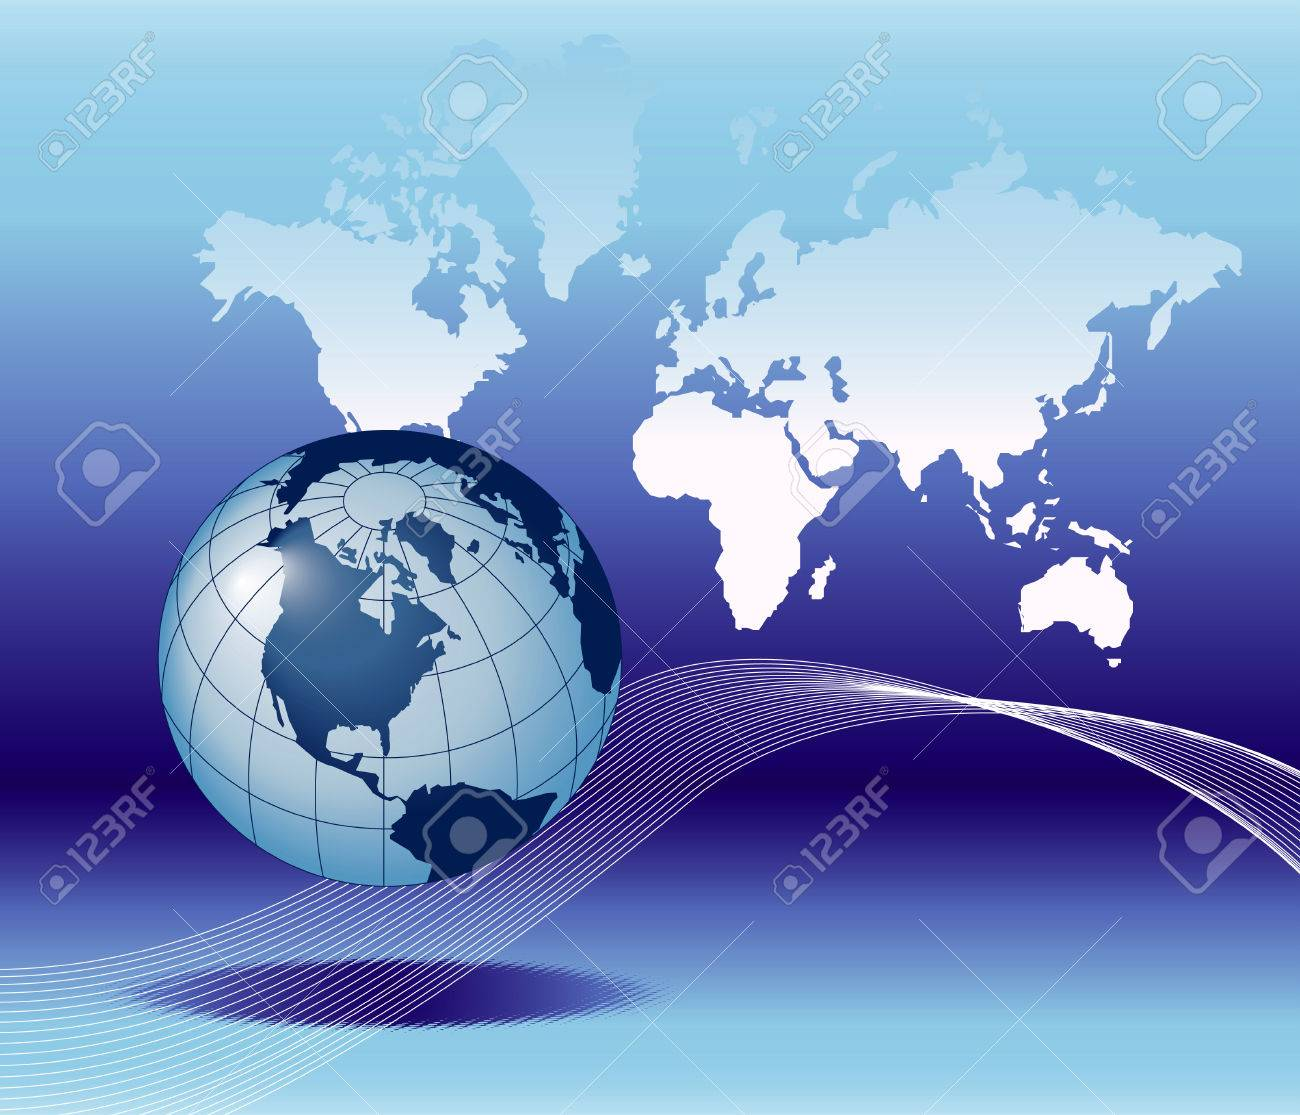 Background image e - Illustration Of The Globe On Earth Map Background With E Mail Symbol Stock Vector